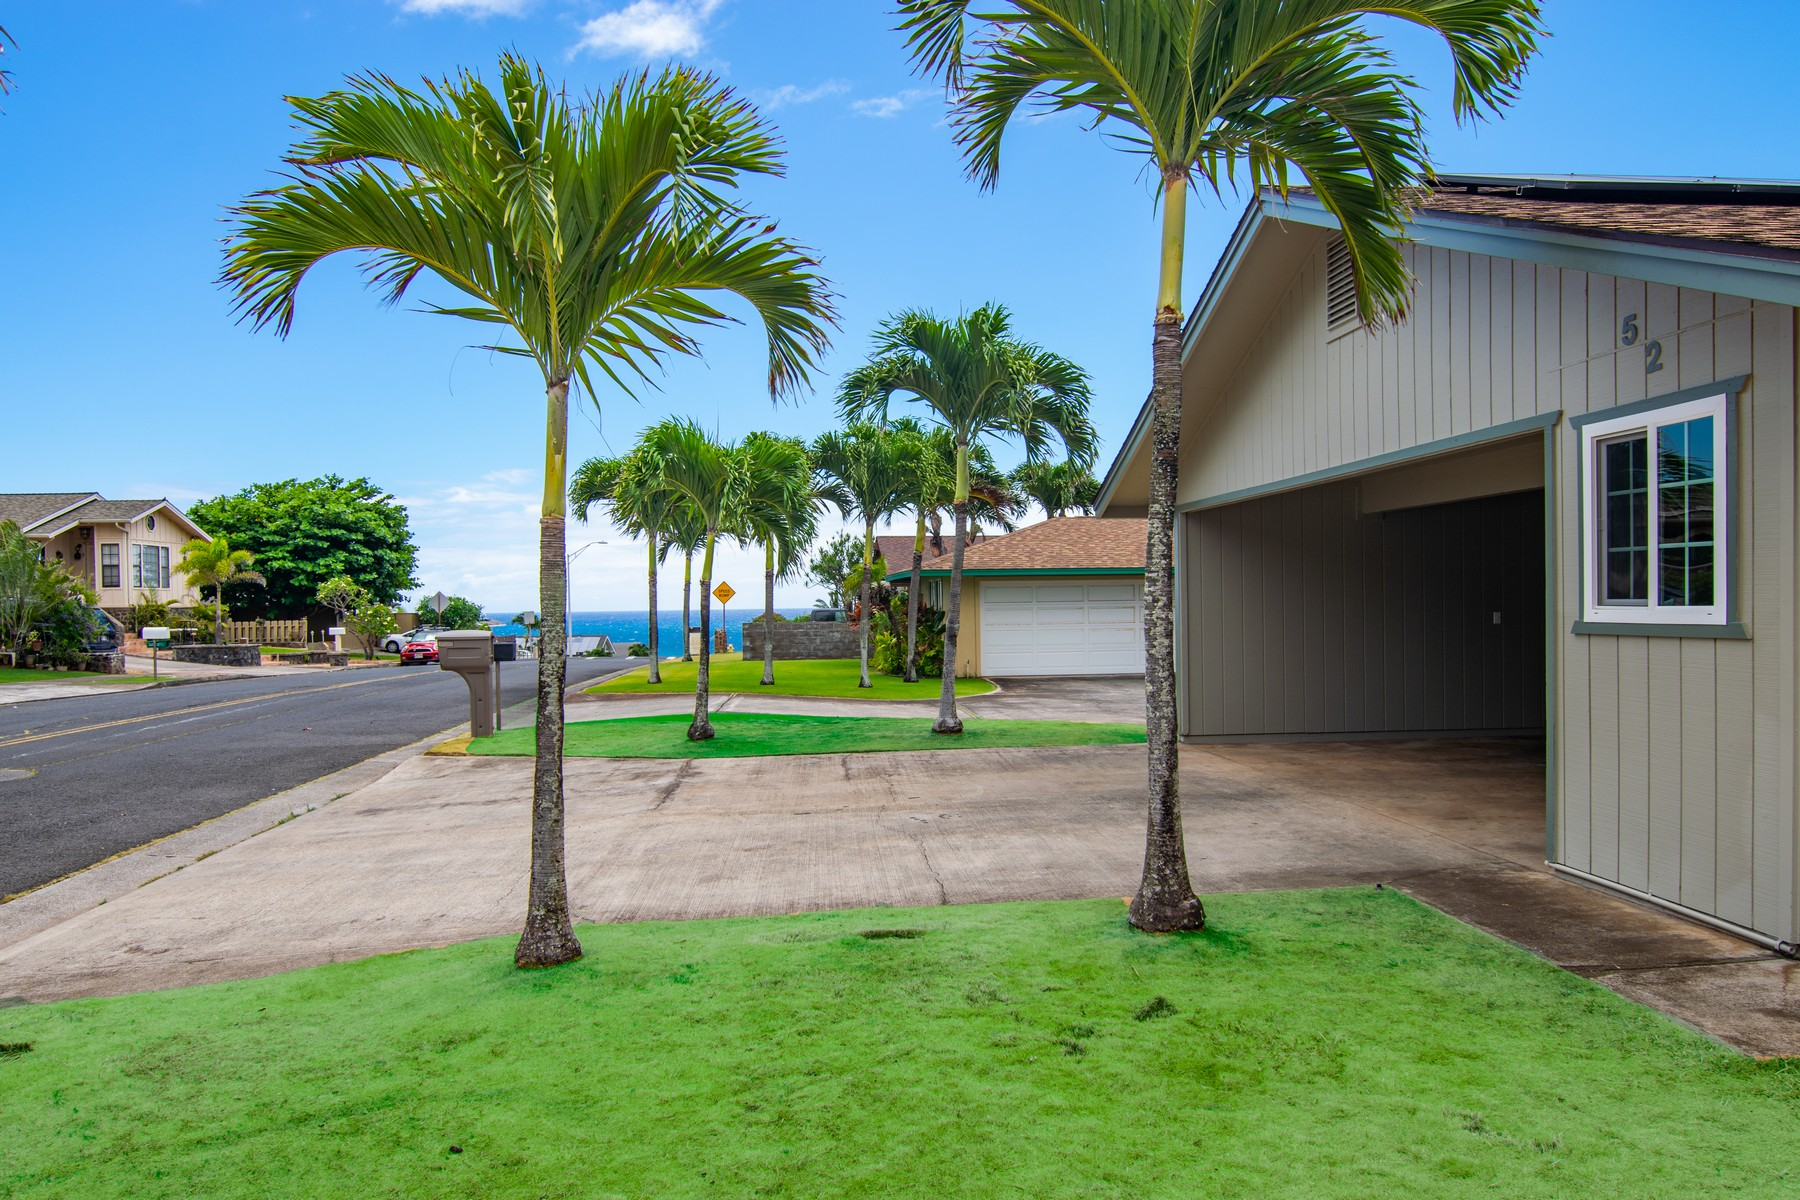 独户住宅 为 销售 在 Ocean breezes from this single level home in Oceanview Estates 52 Hoauna Street 怀卢库, 夏威夷 96793 美国